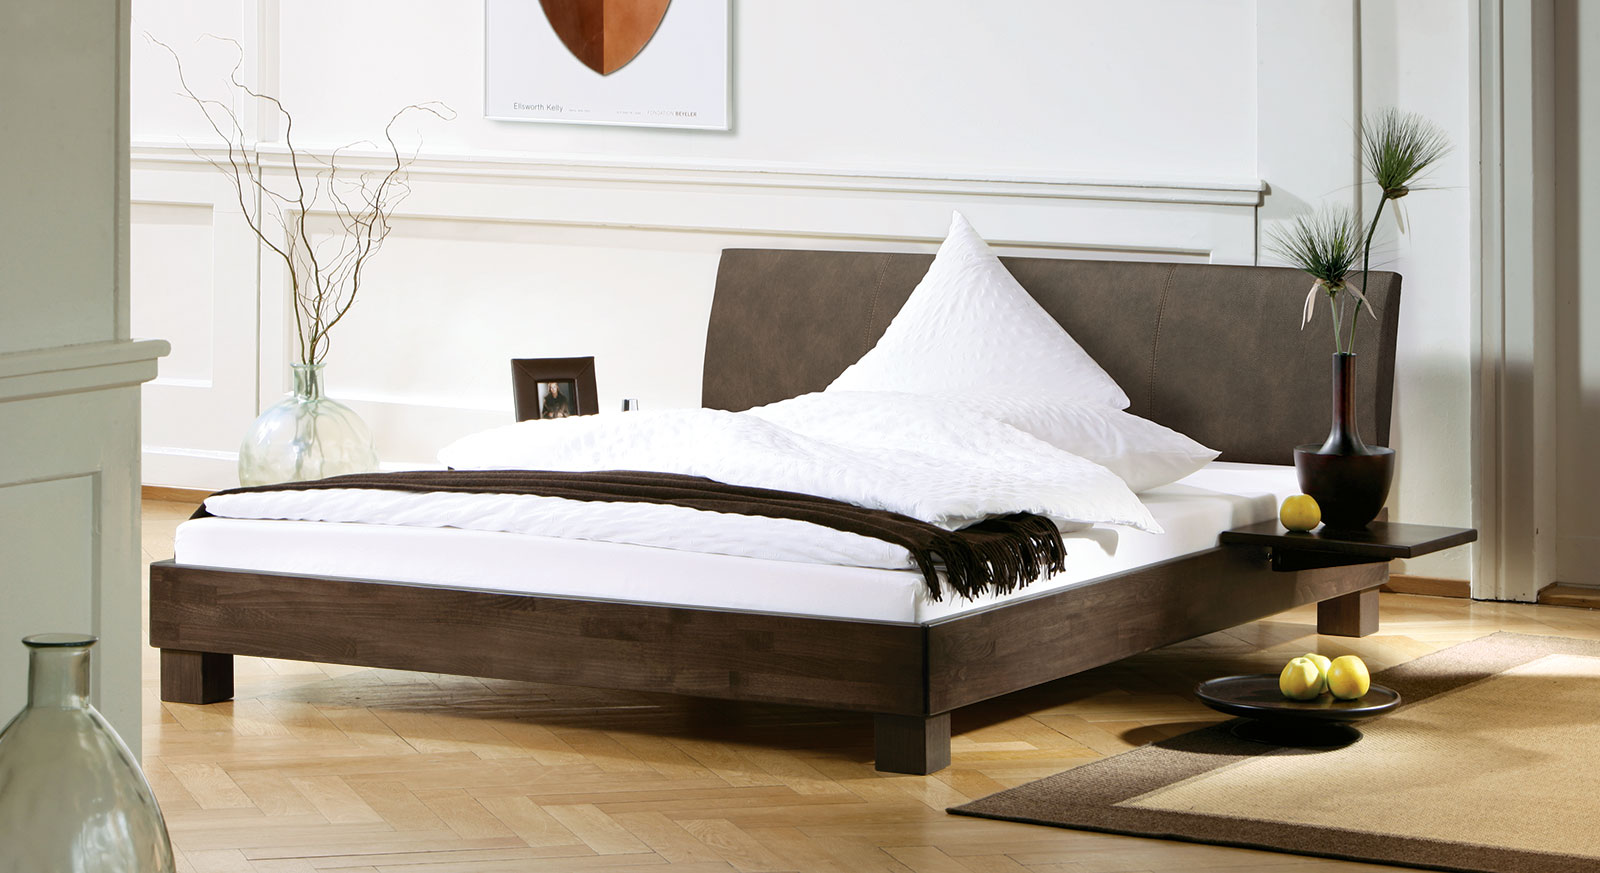 bett m bel einebinsenweisheit. Black Bedroom Furniture Sets. Home Design Ideas